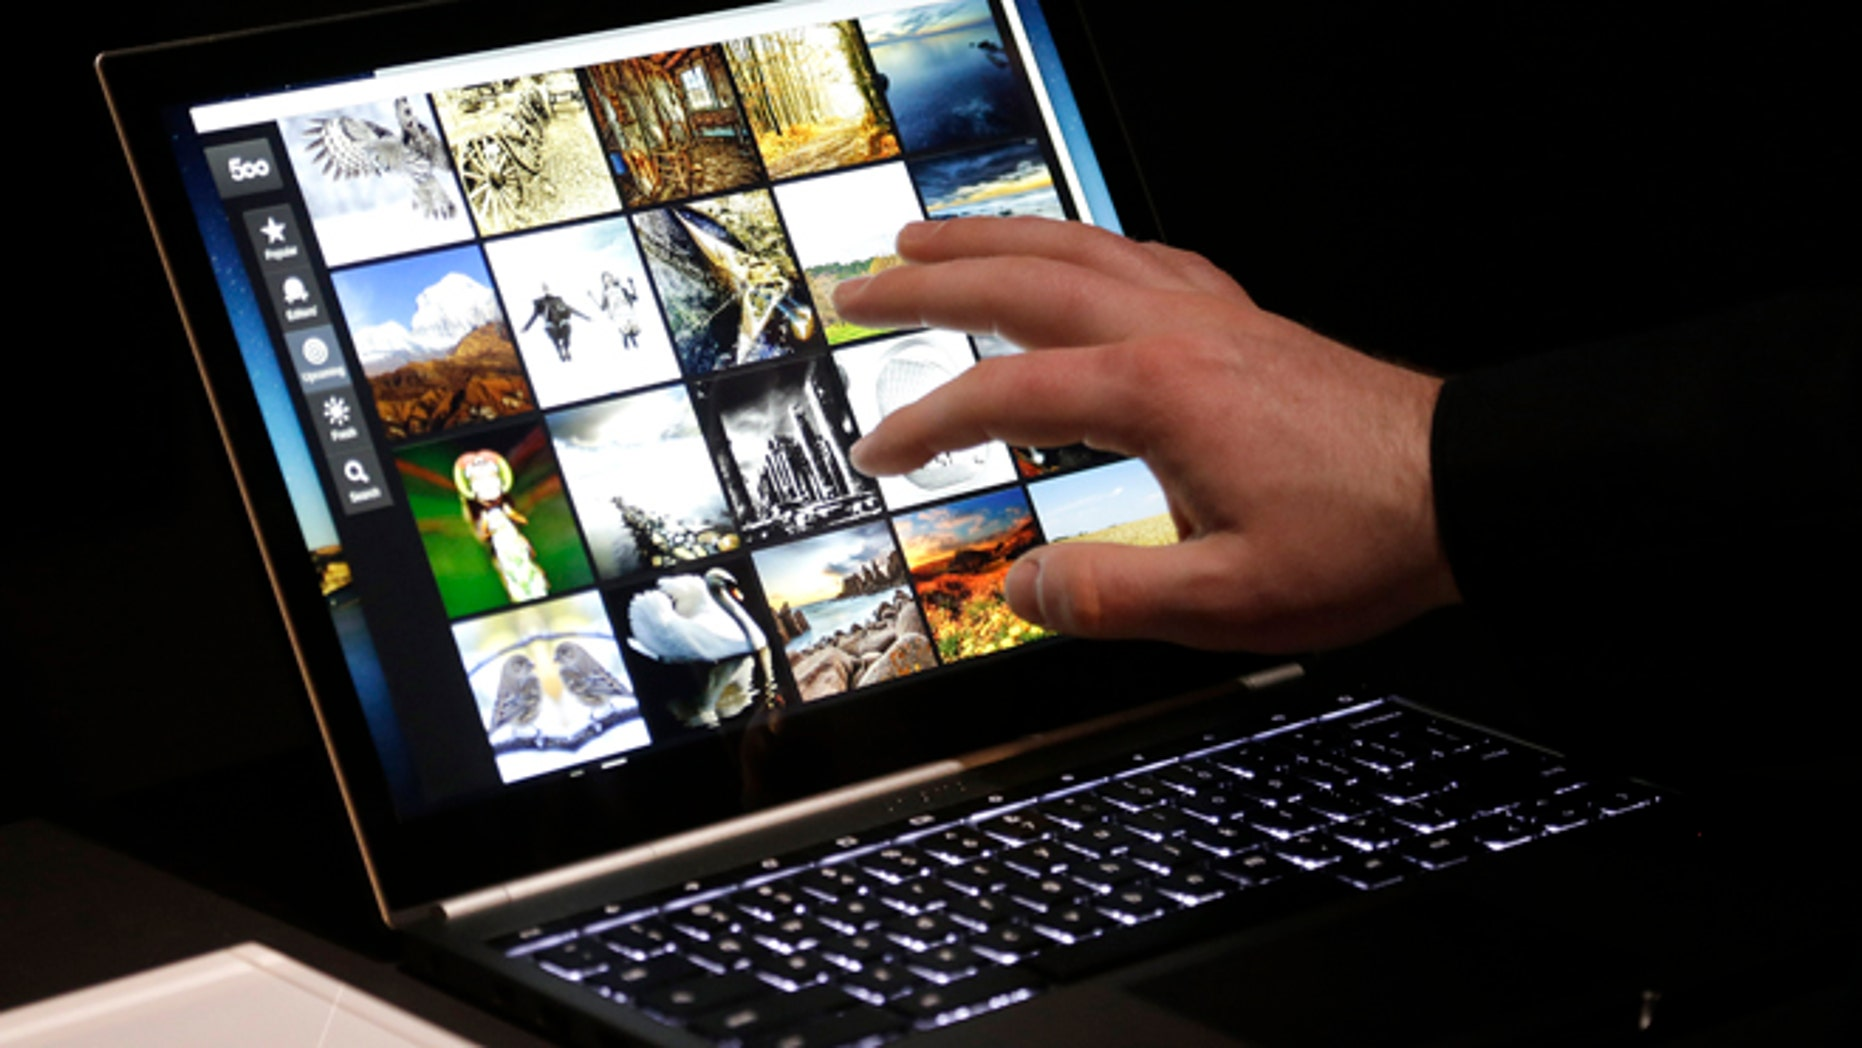 File photo: Feb. 21, 2013: A man uses the Google Chromebook Pixel laptop computer after an announcement in San Francisco.  (AP Photo/Jeff Chiu)